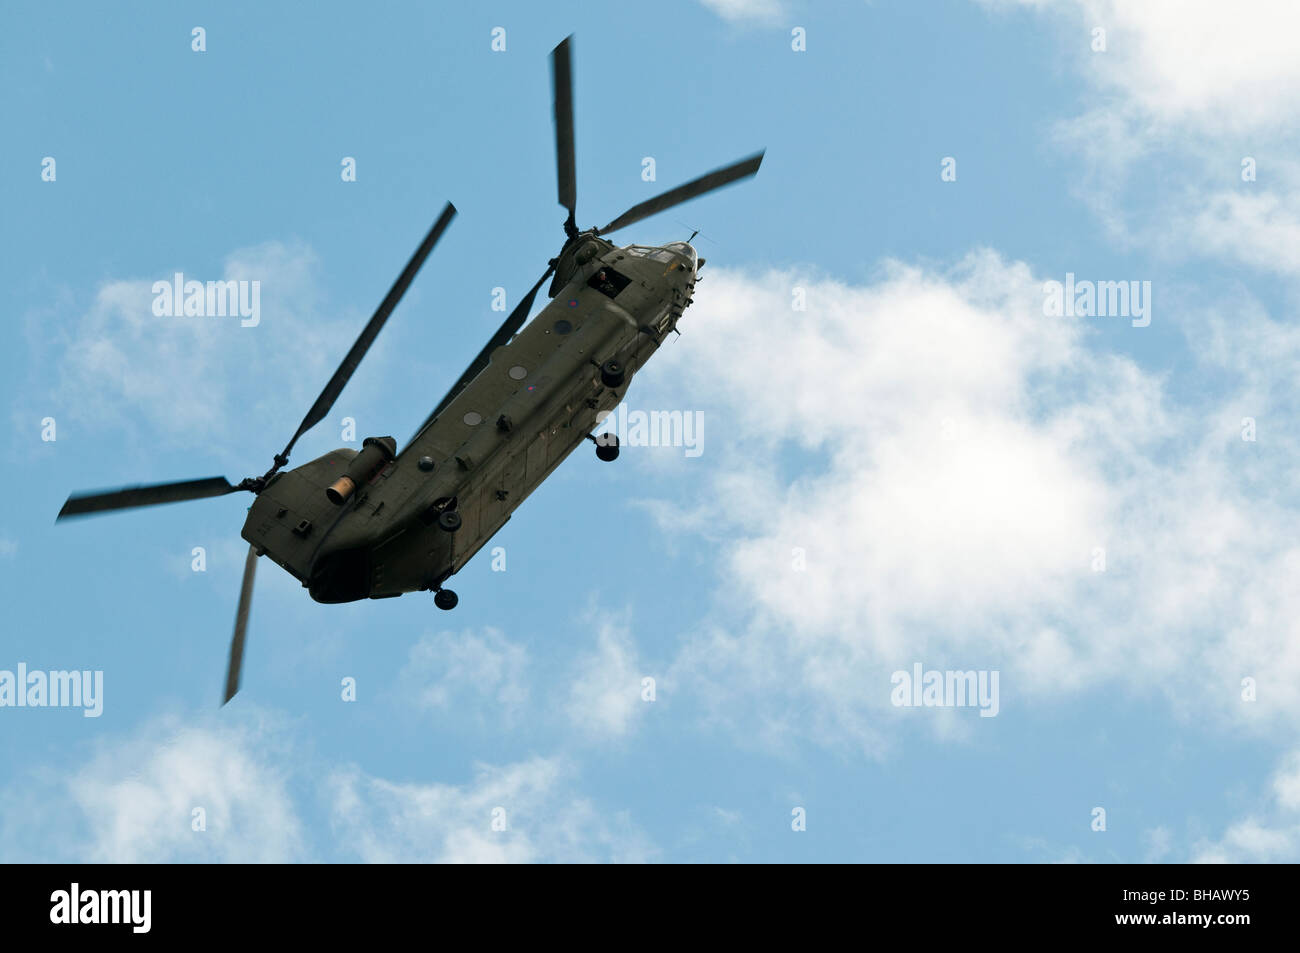 Chinnok helicopter with steep climbing angle of attack during aerobatic display at RAF Waddington Airshow - Stock Image